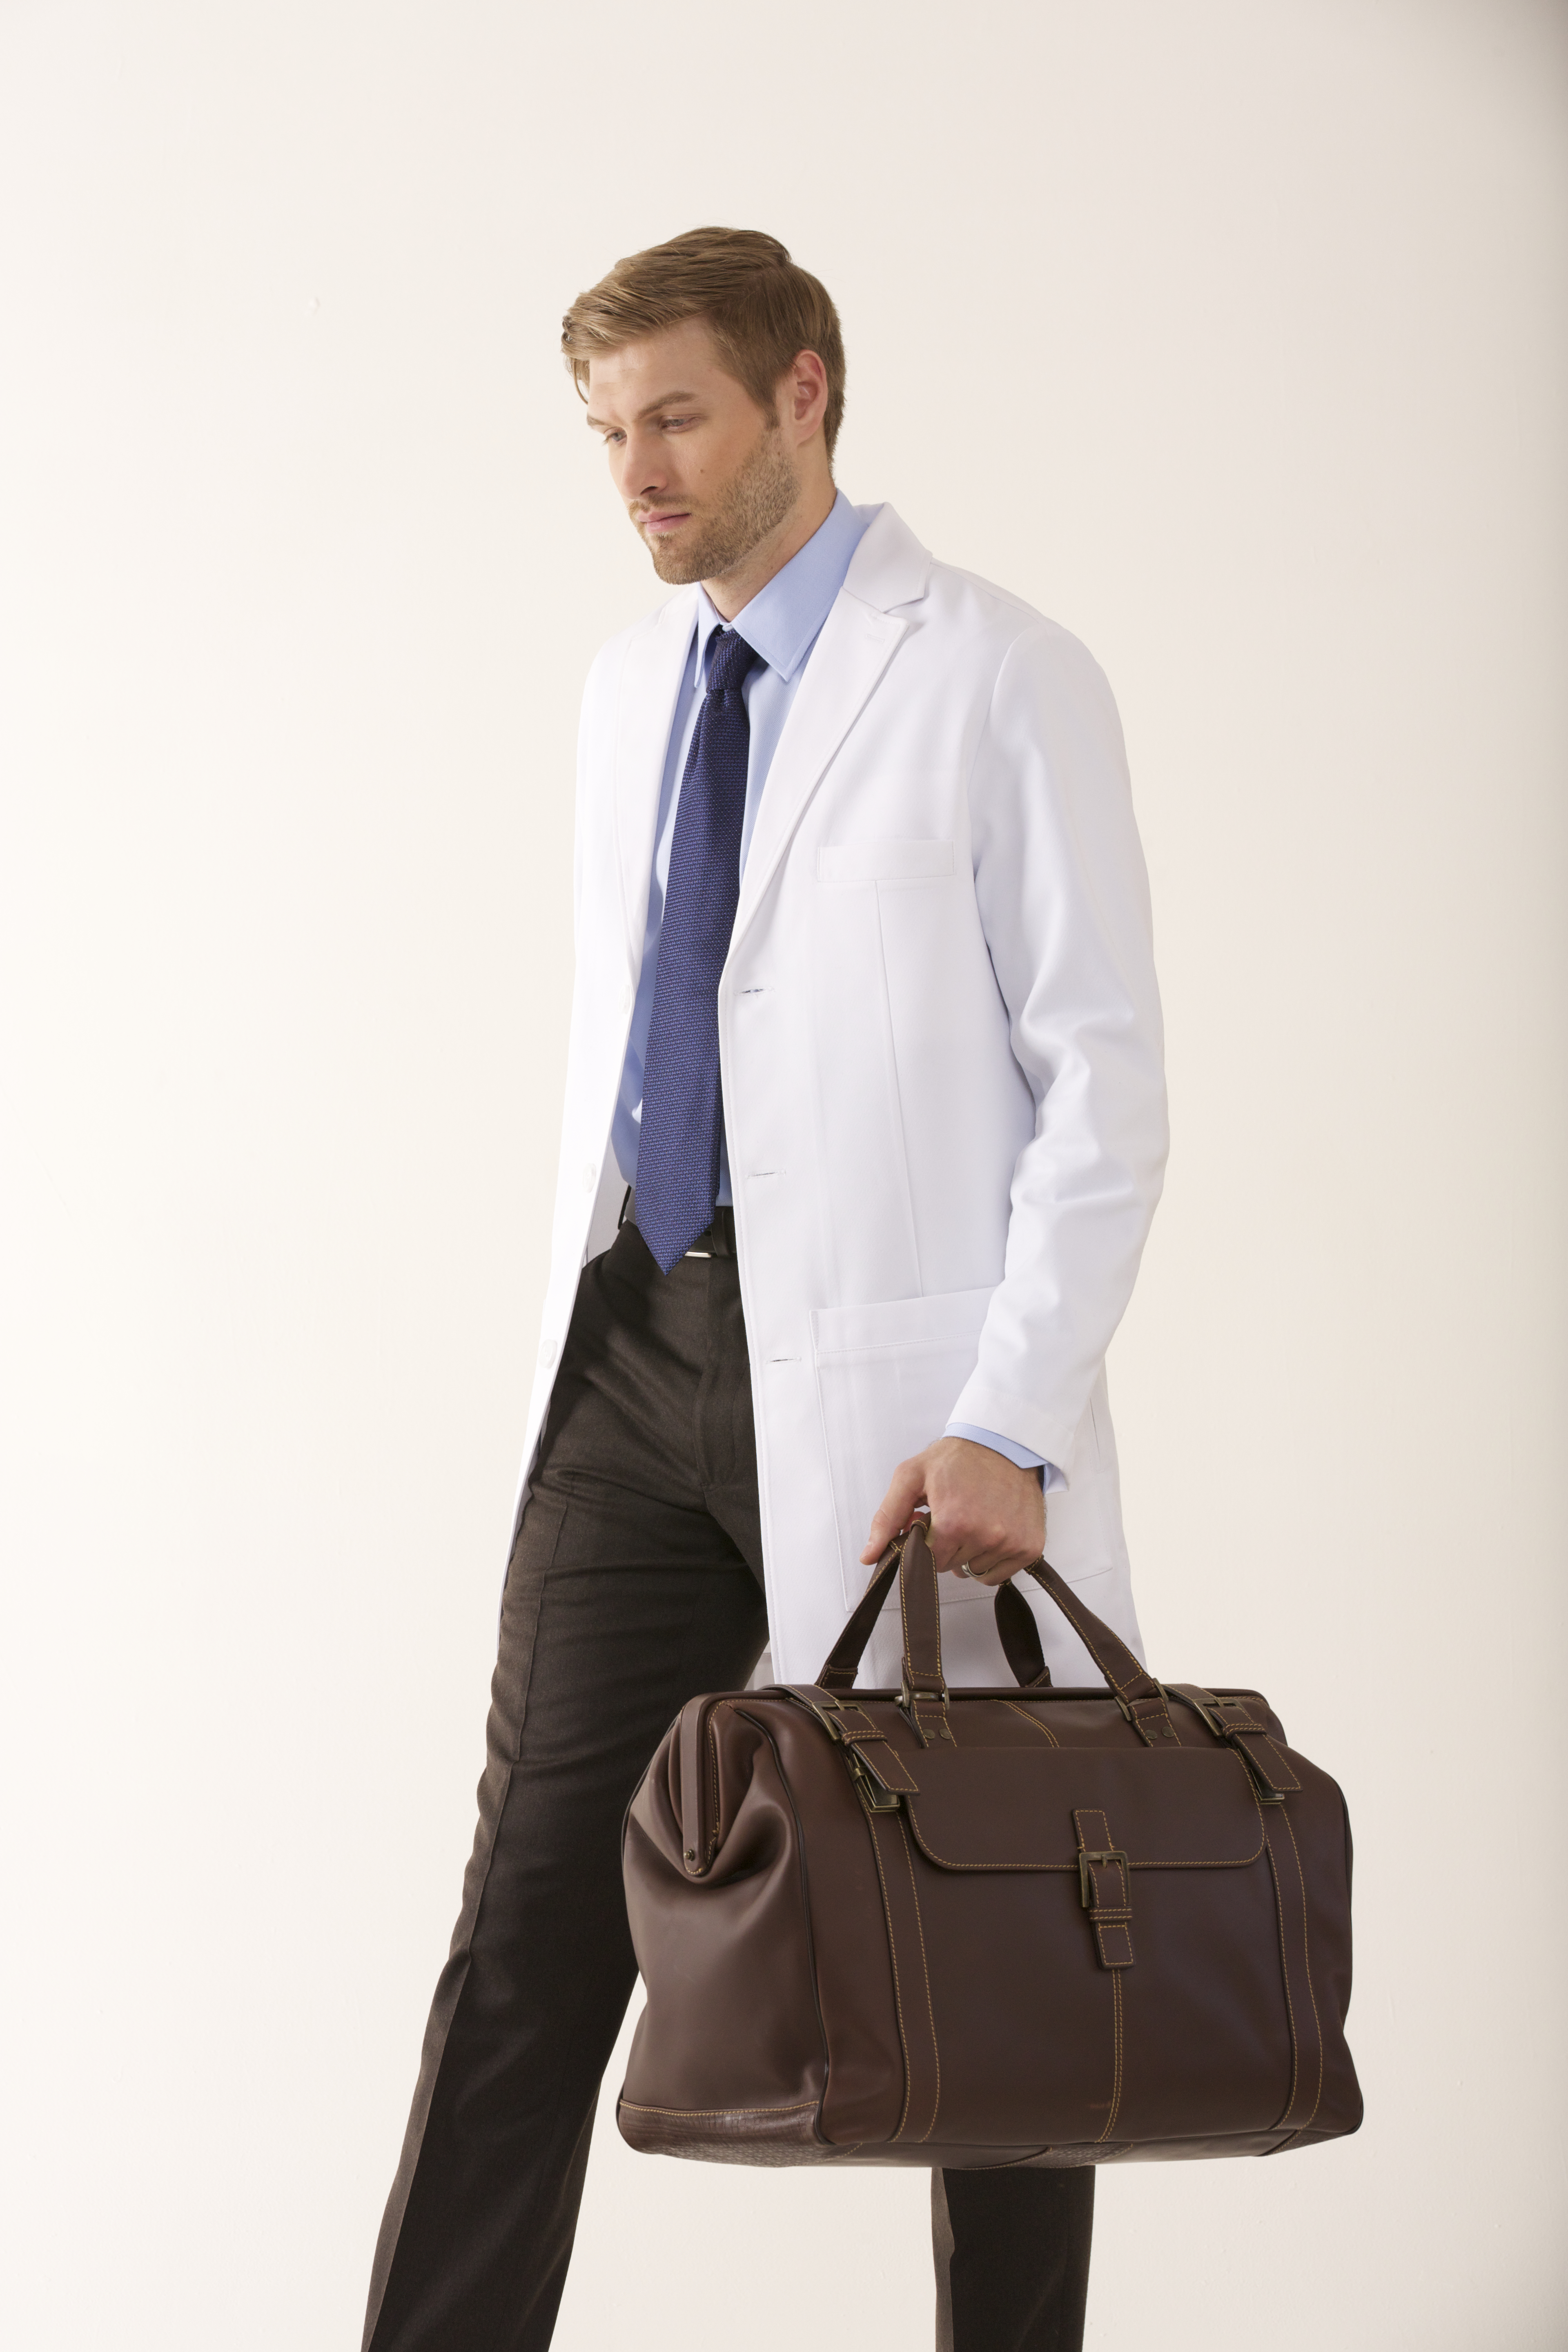 Fitted Lab Coats: What To Look For